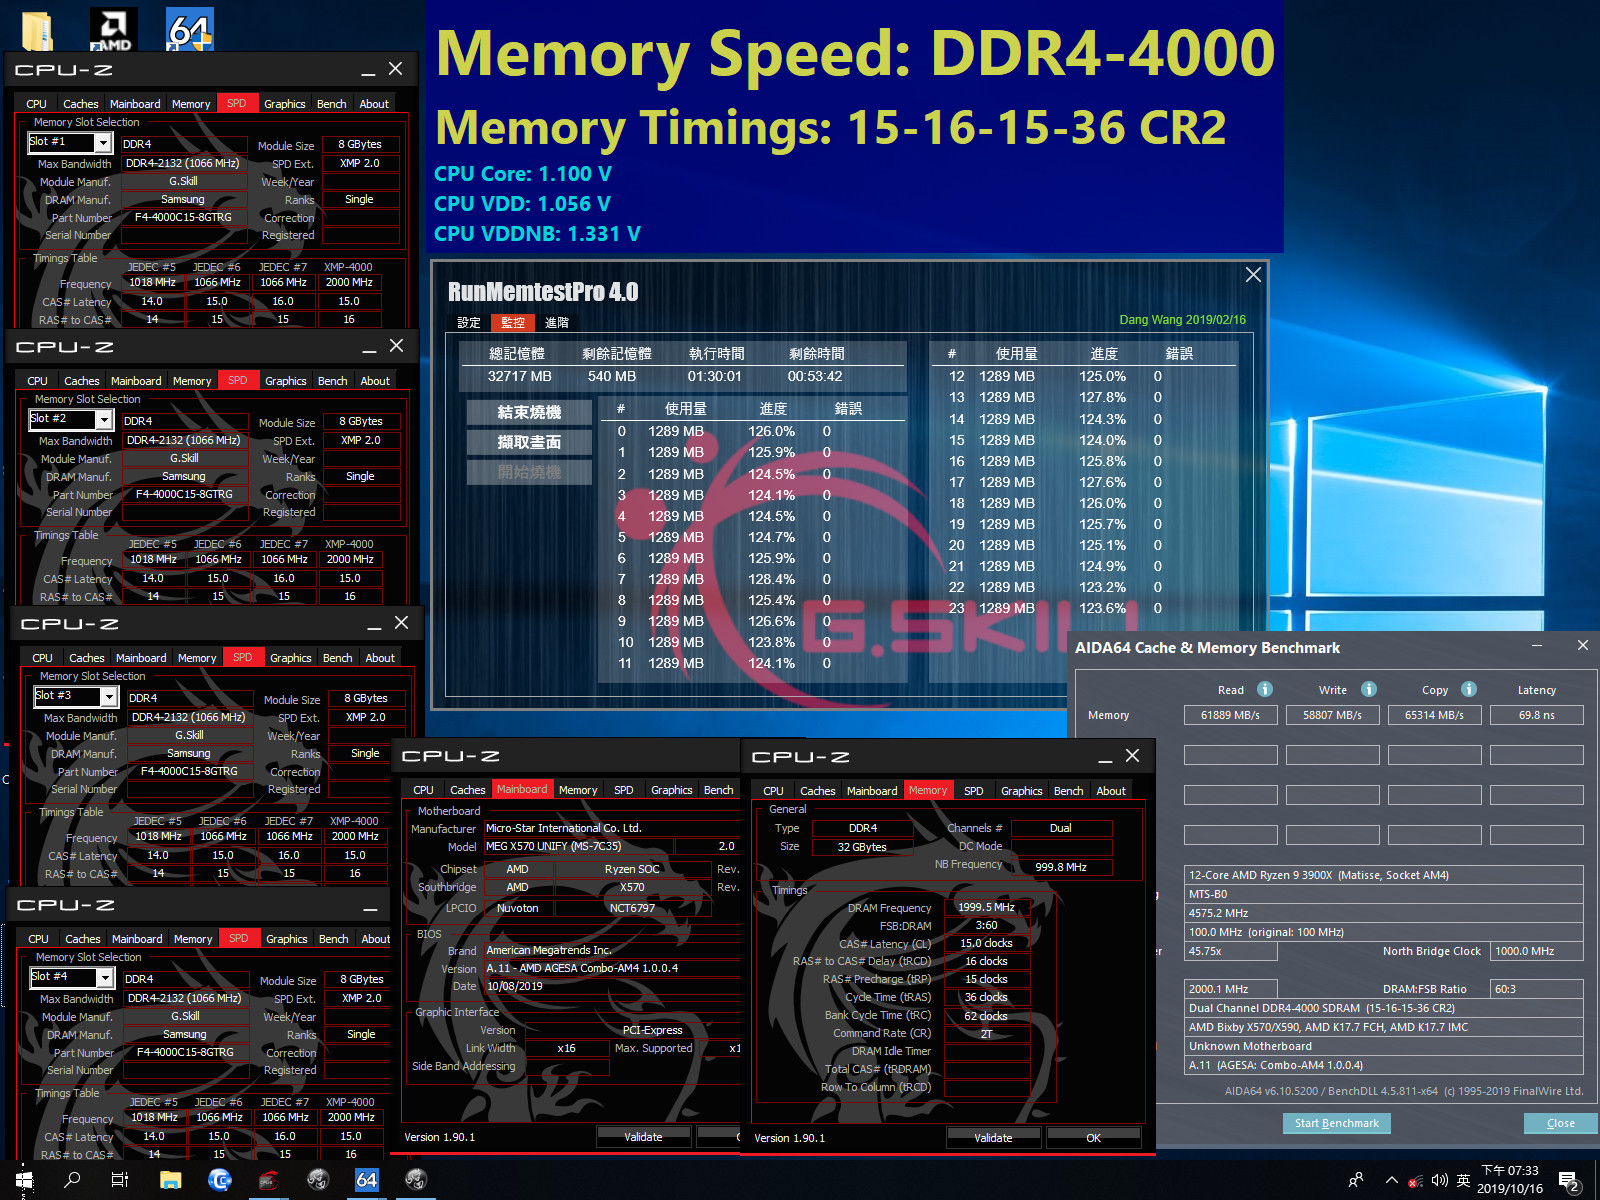 gskill trident z 4400 screenshot 2